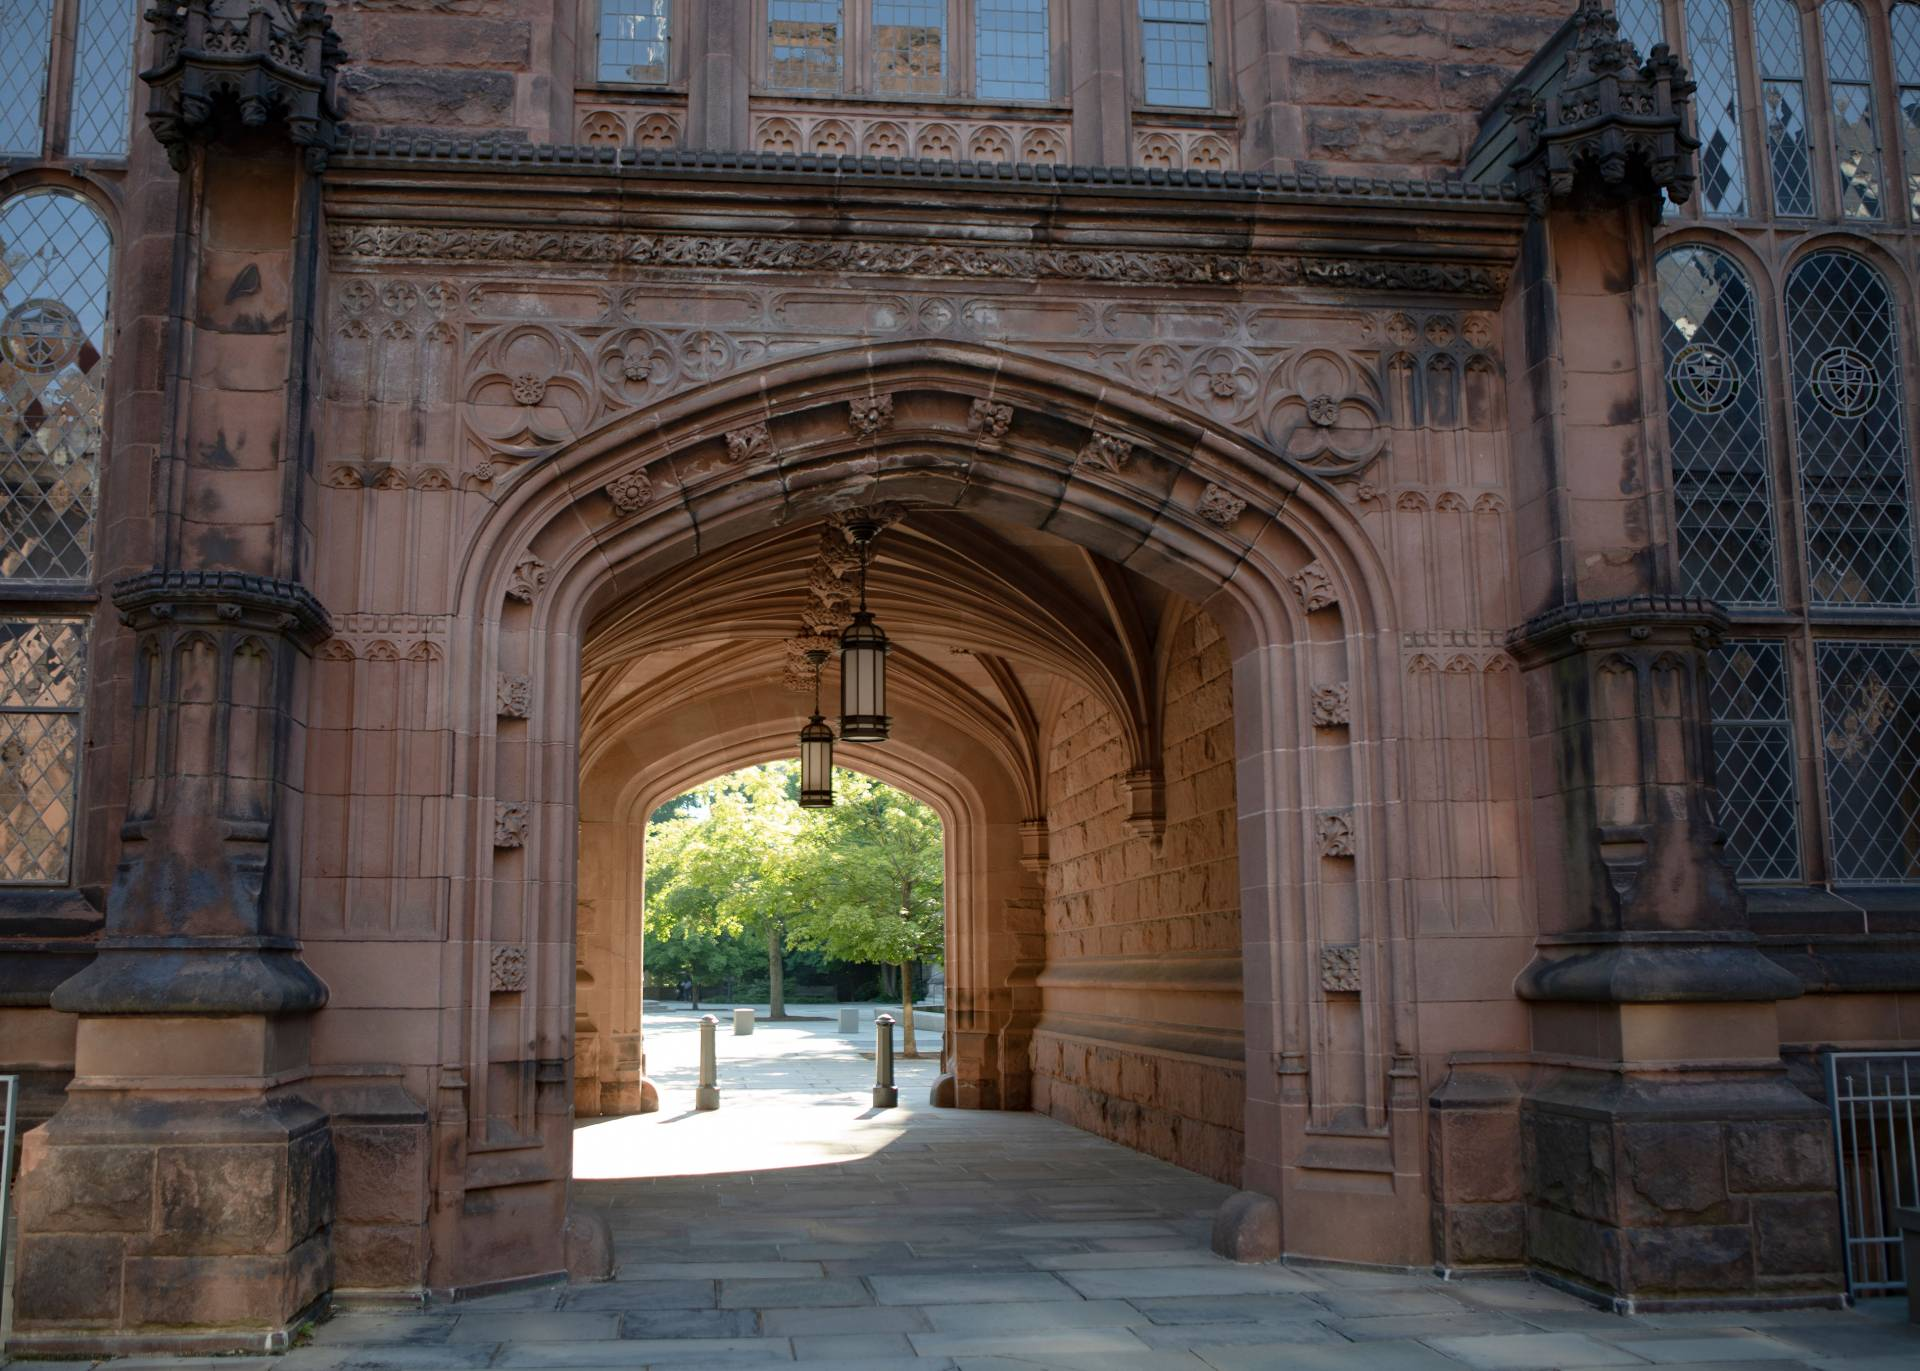 Johnson Arch on a sunny day